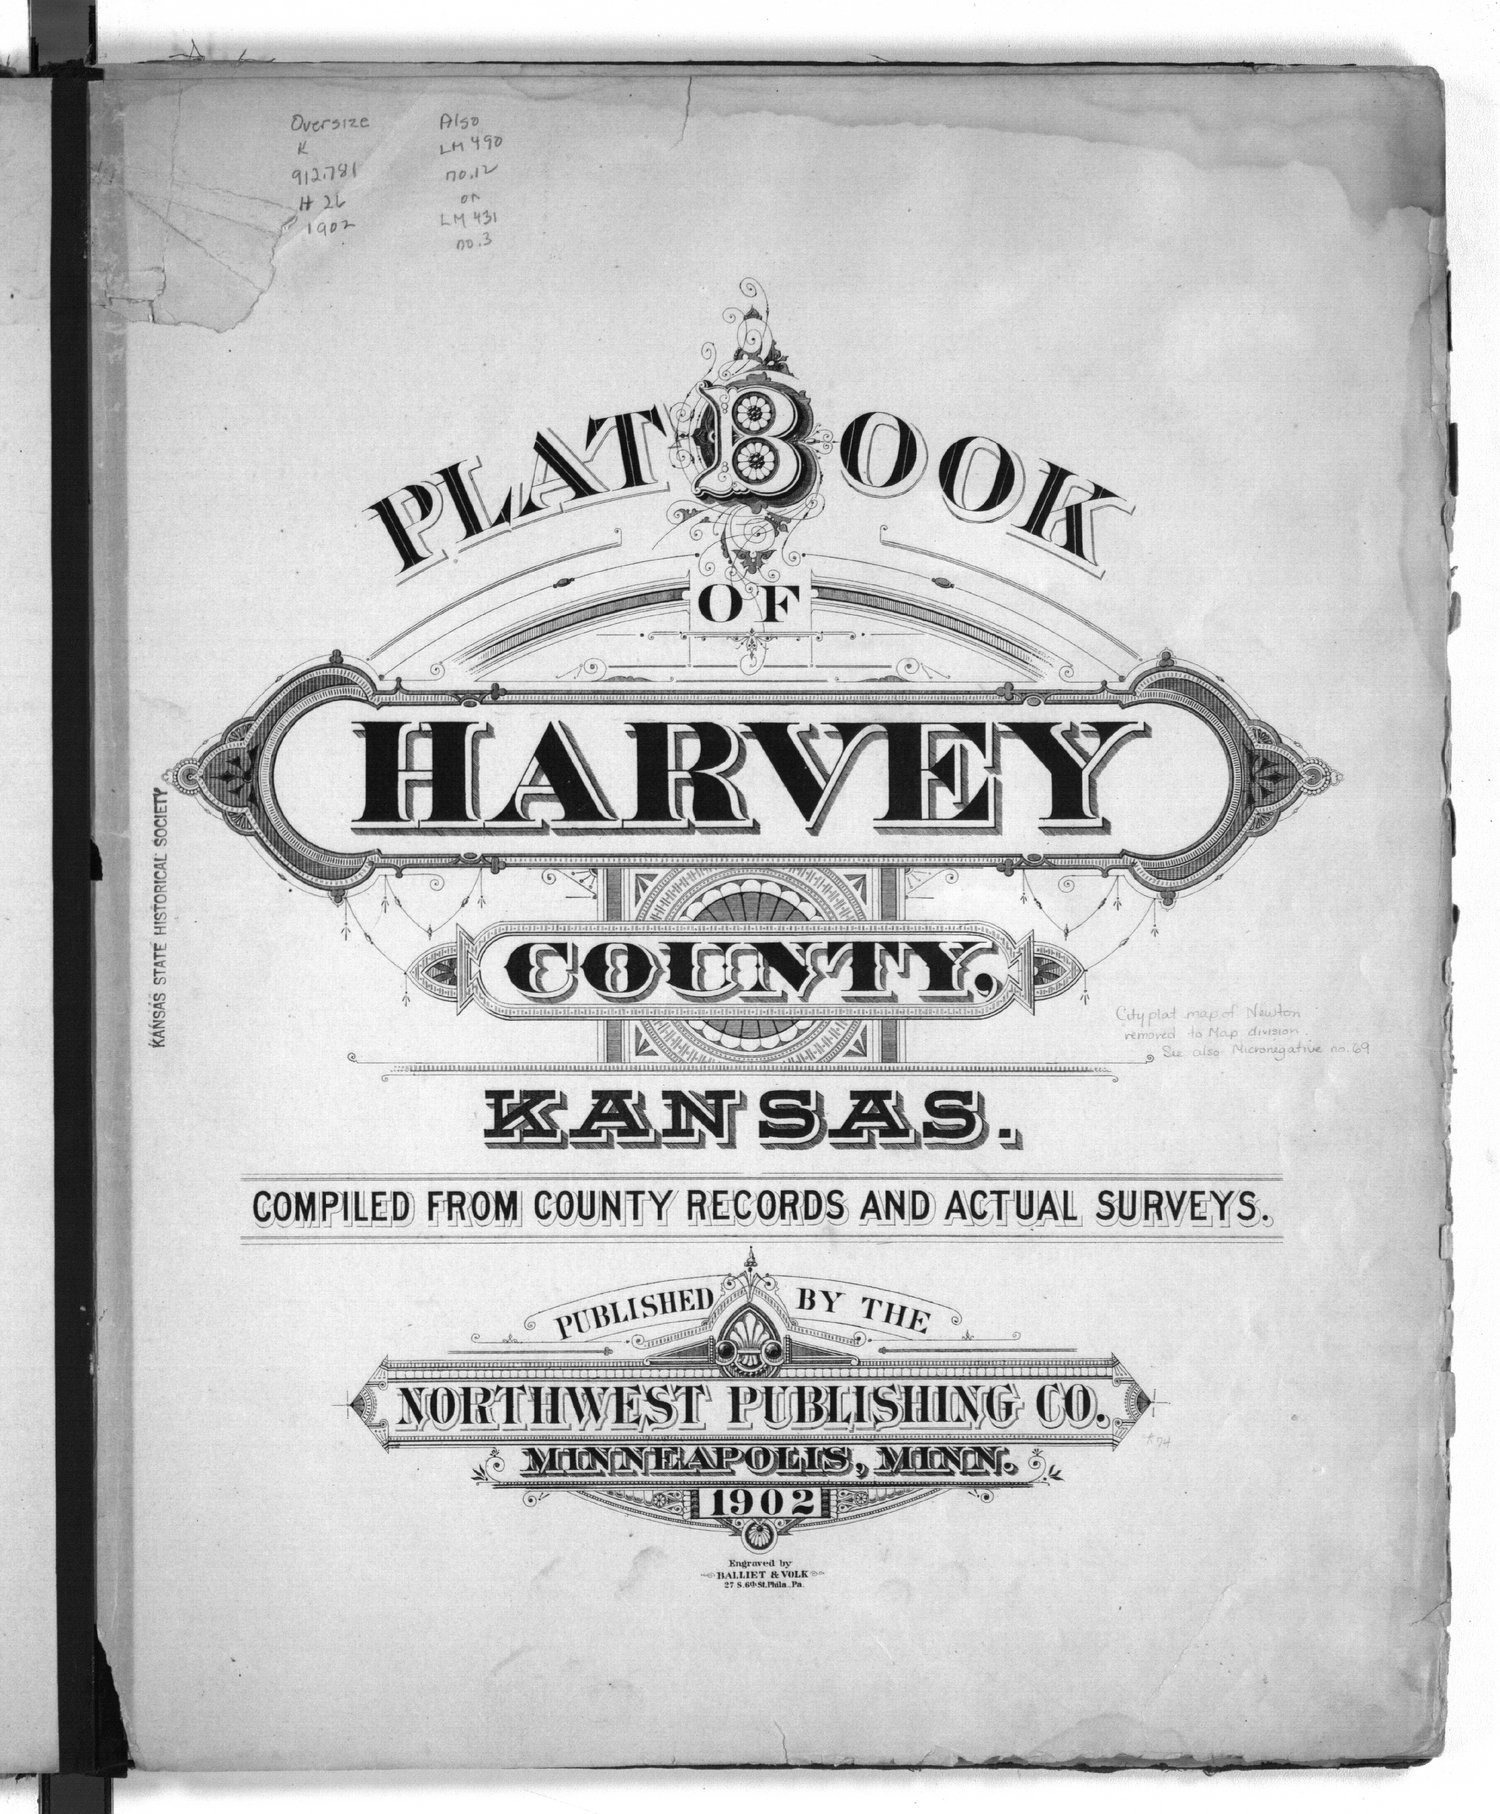 Plat book of Harvey County, Kansas - Title Page